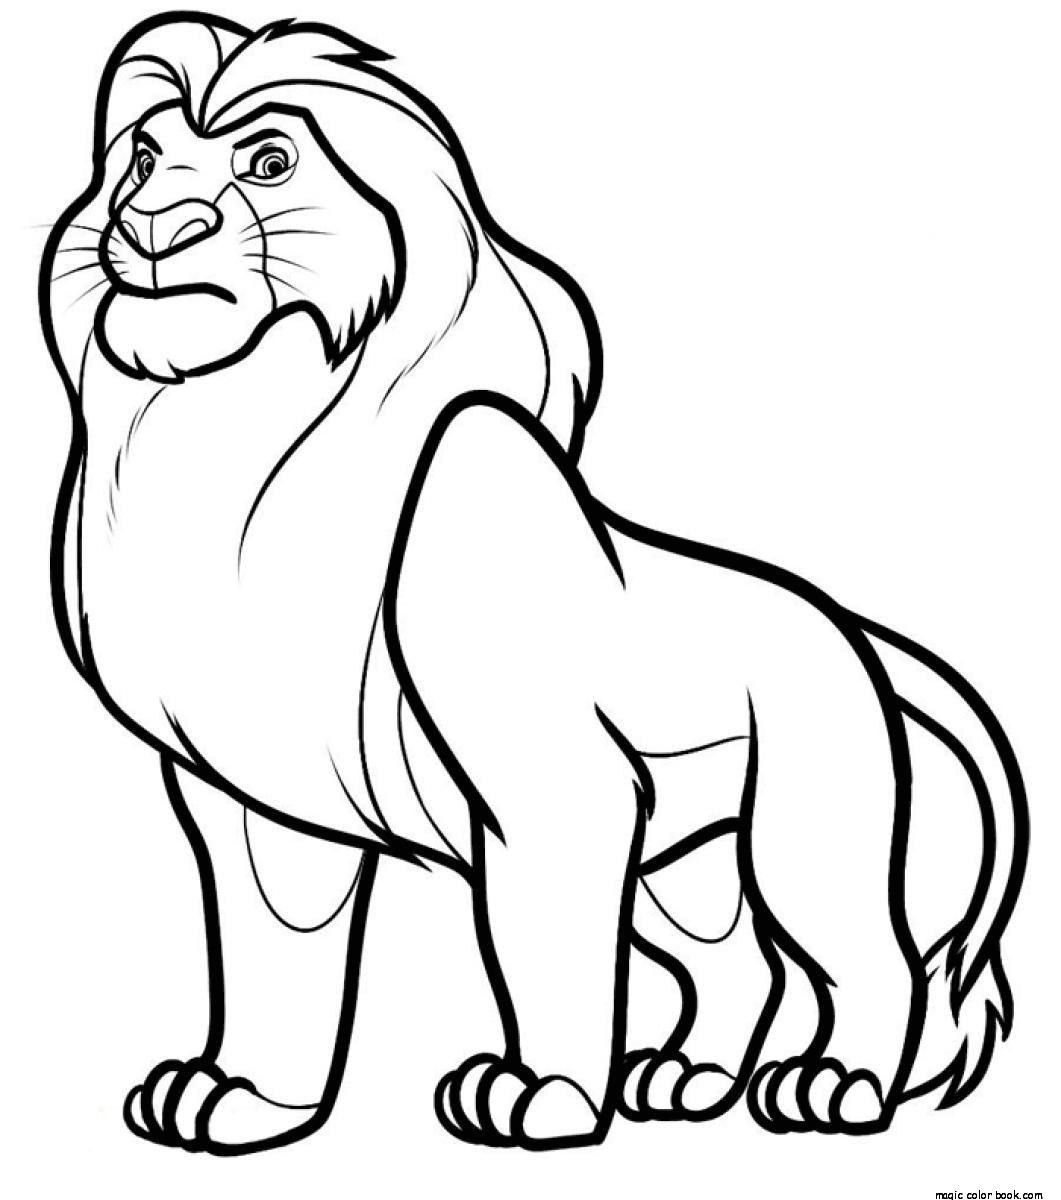 Mufasa disney the lion king coloring pages online free | kids ...